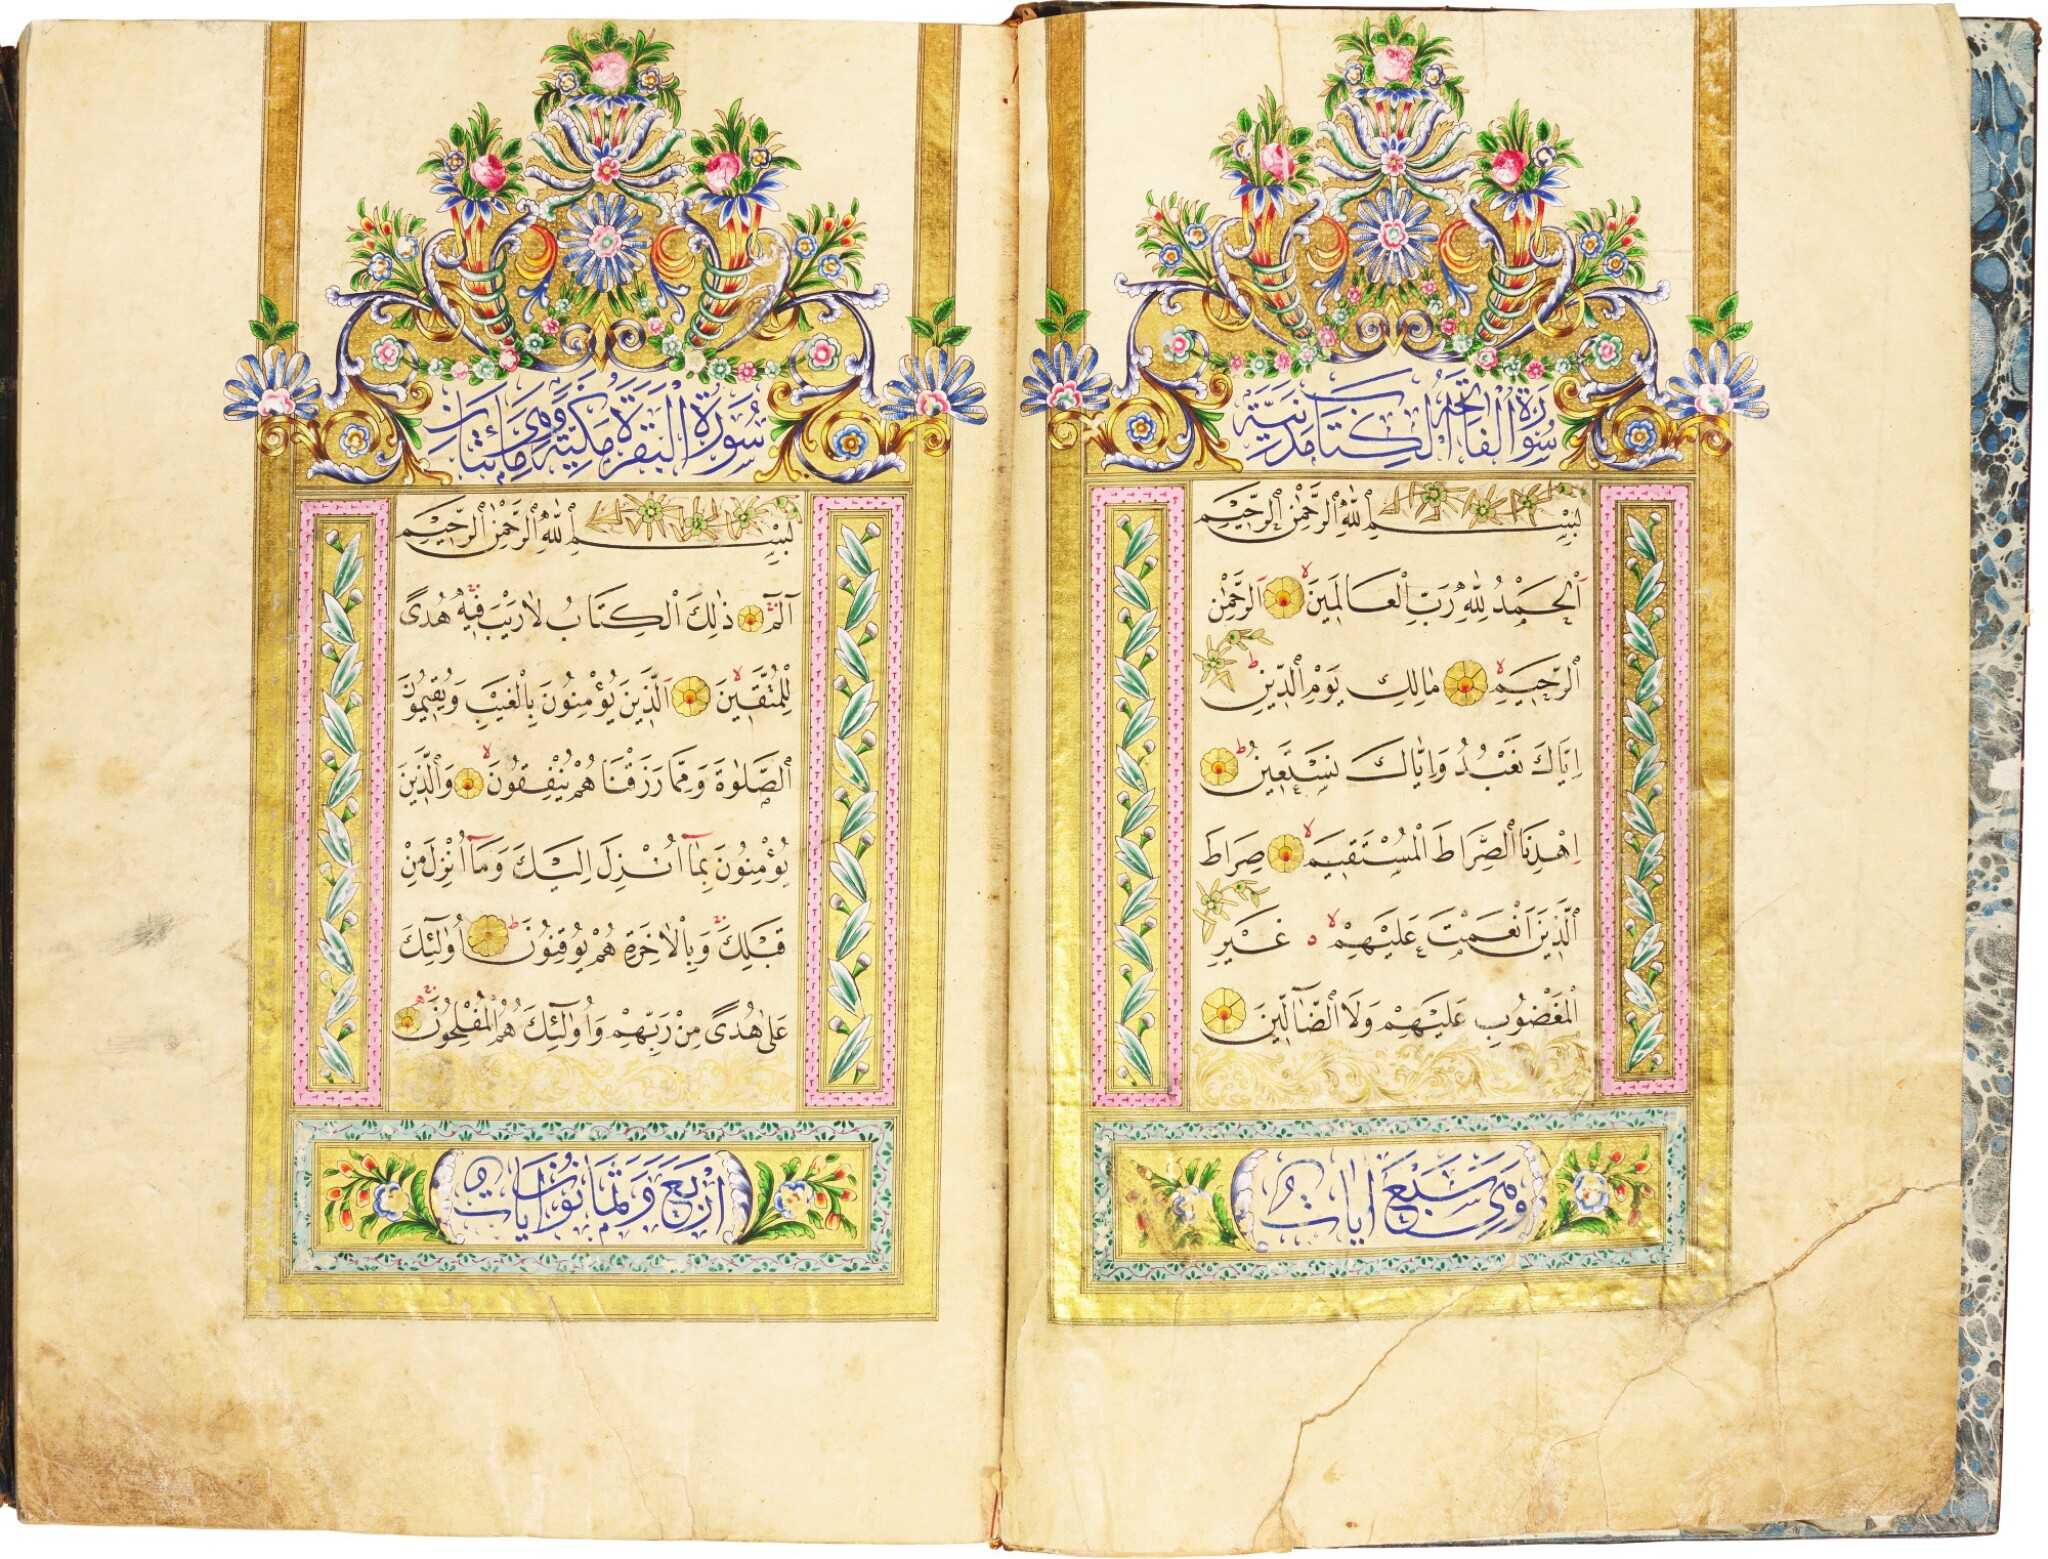 View full screen - View 1 of Lot 52. A LARGE ILLUMINATED QUR'AN, COPIED BY AHMED AL-ILHAMI, STUDENT OF ALI AL-HAMDI, STUDENT OF OSMAN WALI, KNOWN AS DAMAD AL-'AFIF, TURKEY, OTTOMAN, DATED 1270 AH/1853-54 AD.